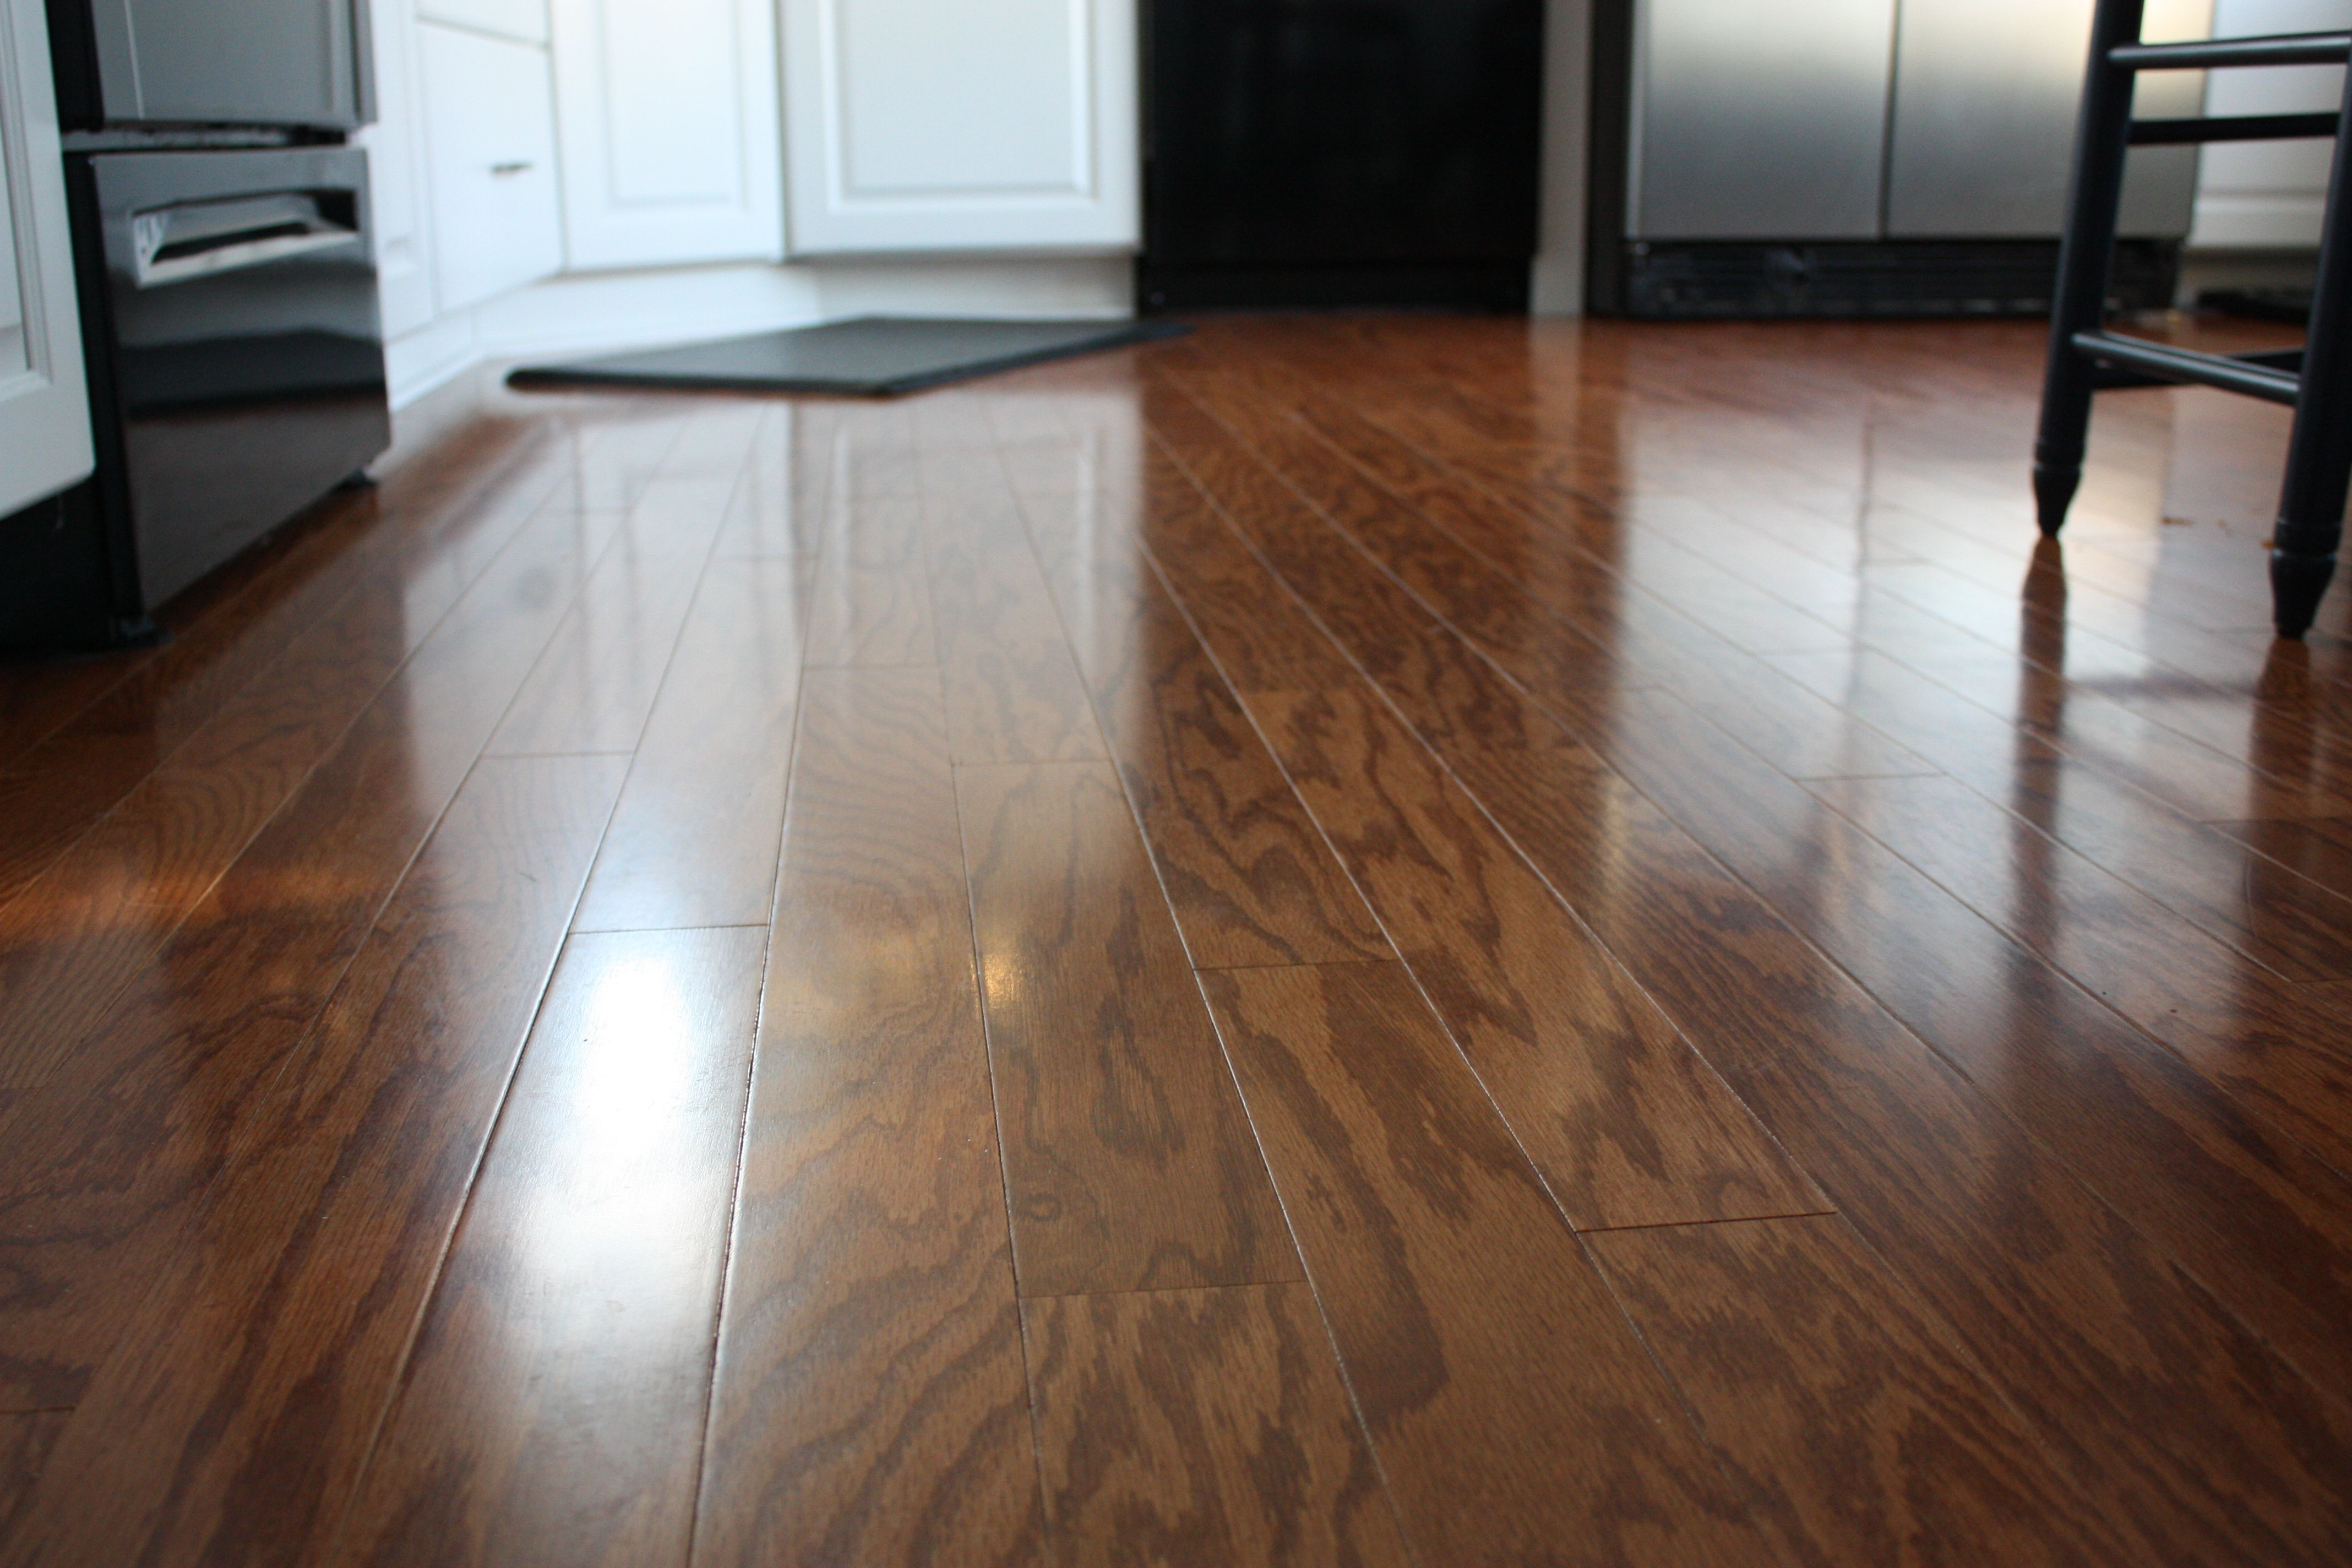 hardwood flooring tips and tricks of house of order tip 2 focus on the floors cleaning pinterest pertaining to house of order tip 2 focus on the floors